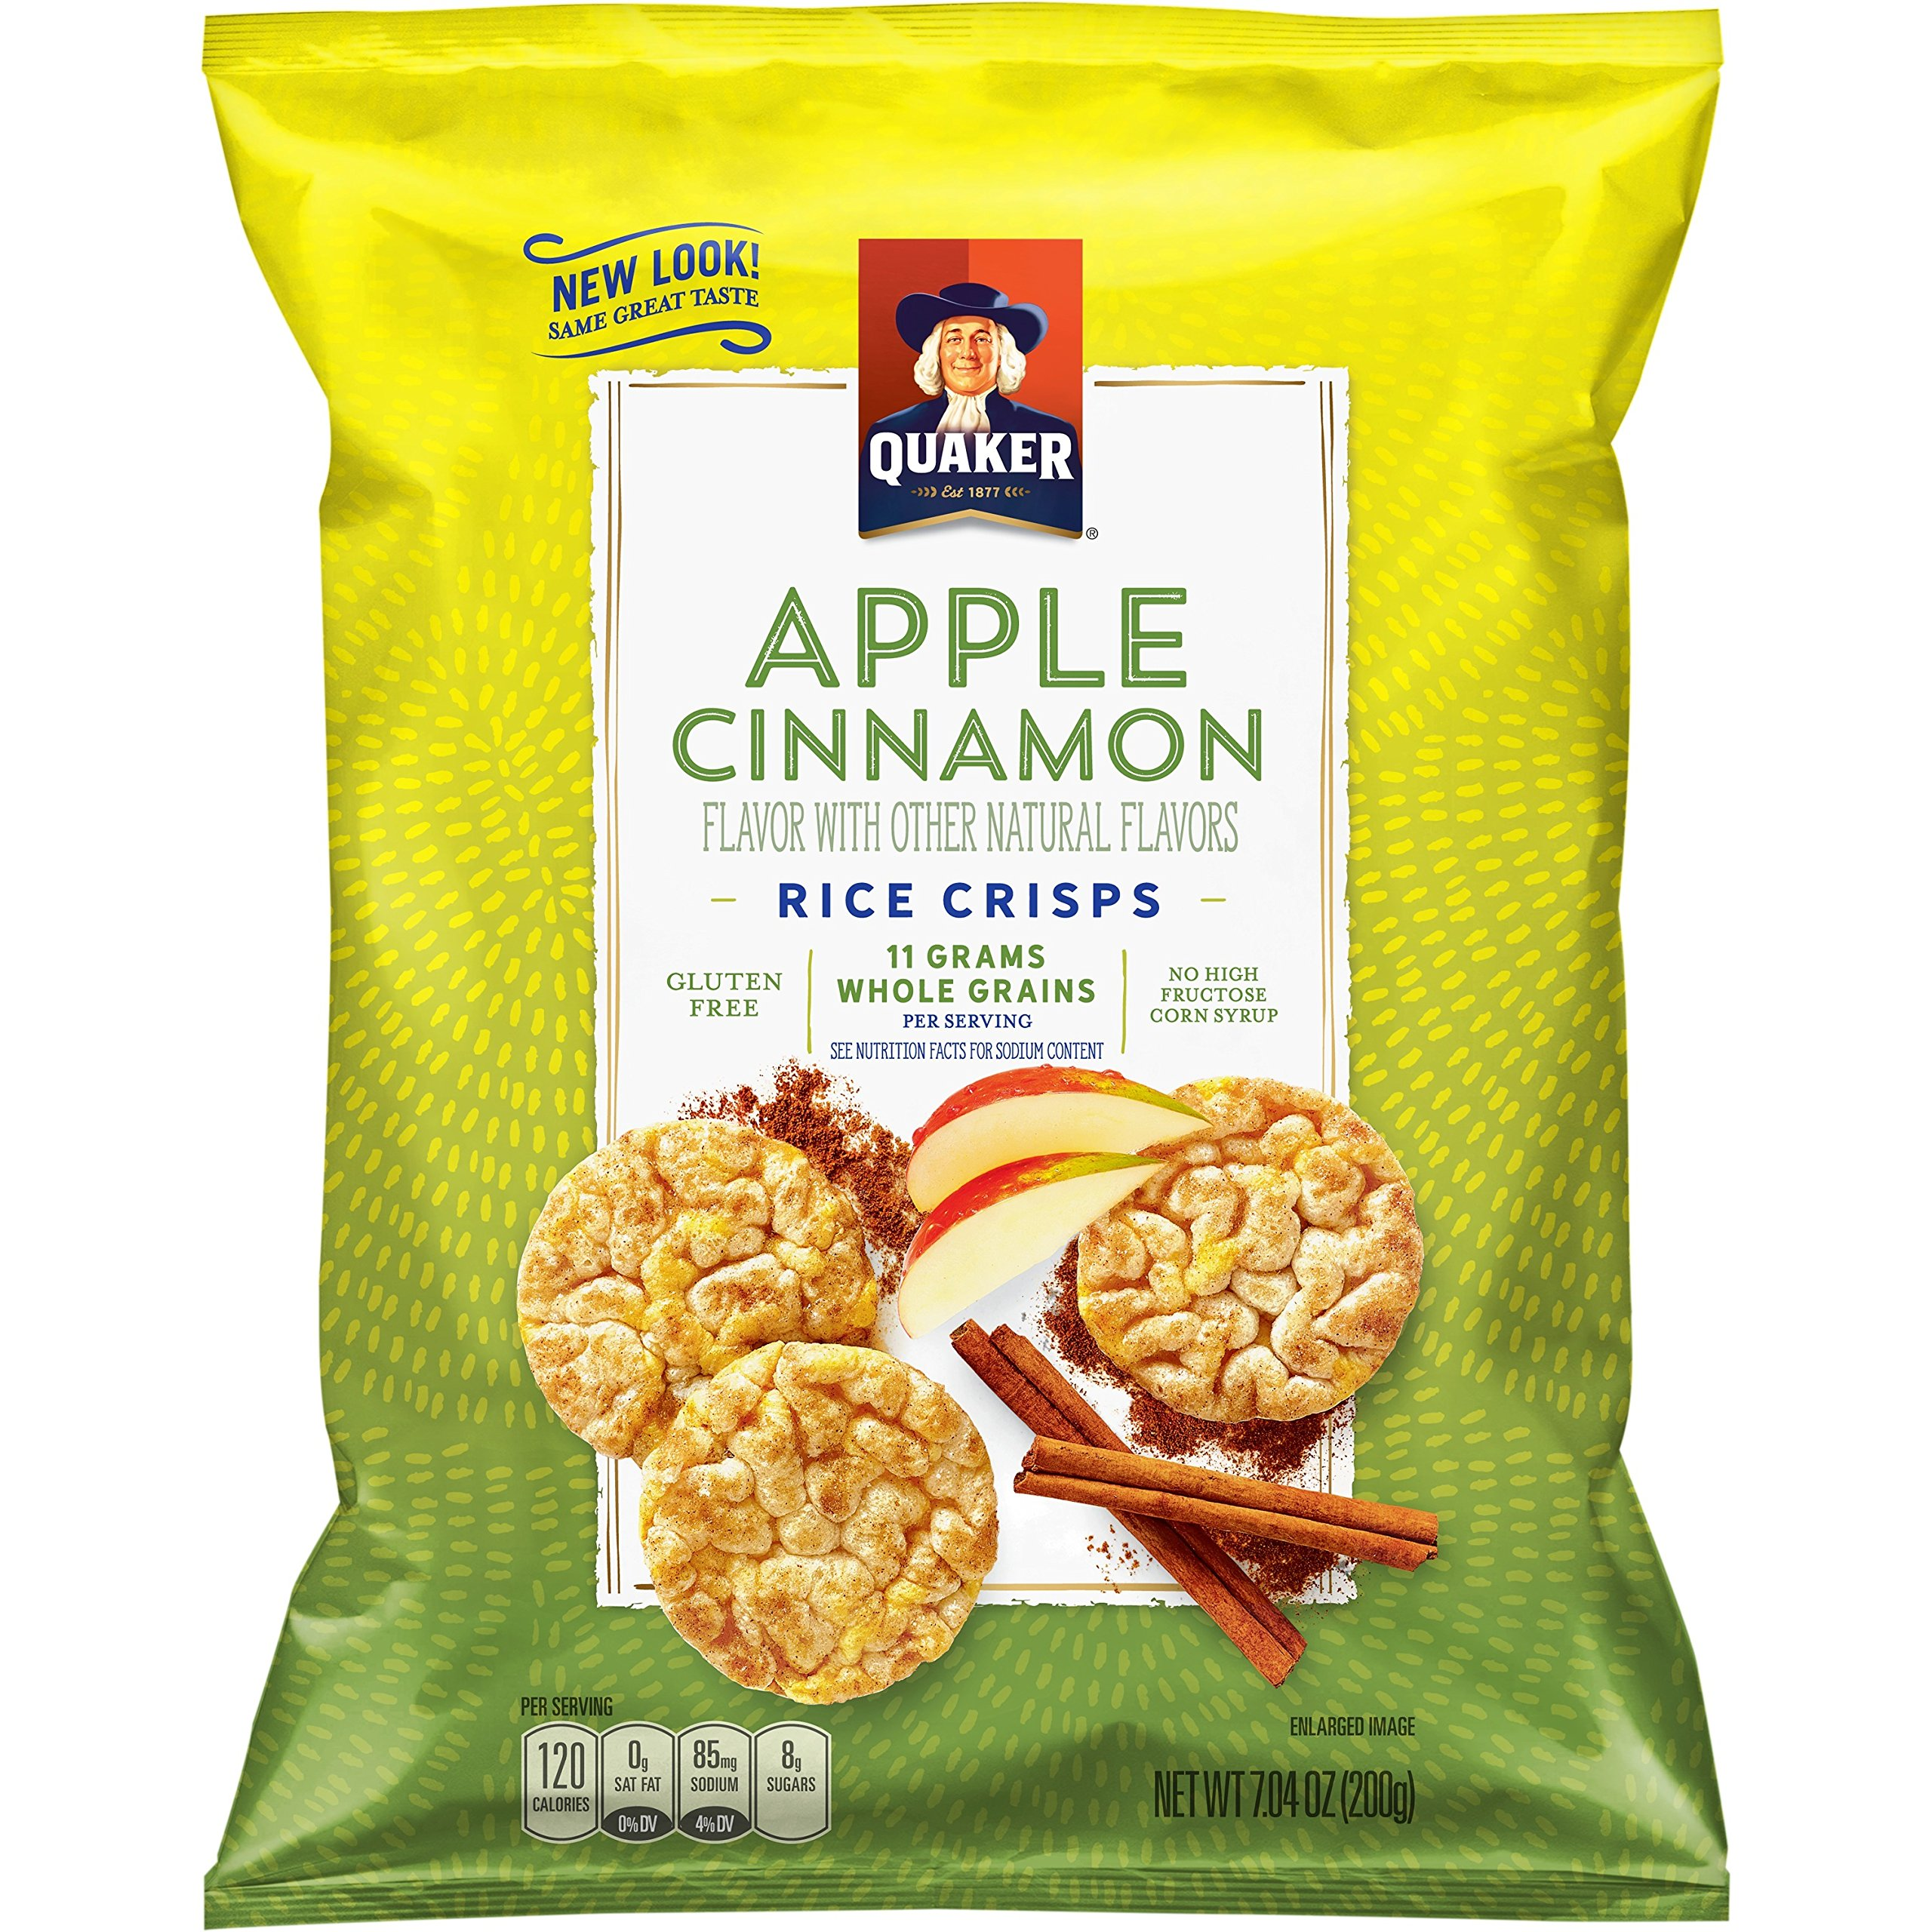 Quaker Rice Crisps, Apple Cinnamon, 7.04 oz Bags, 4 Count (Packaging May Vary)